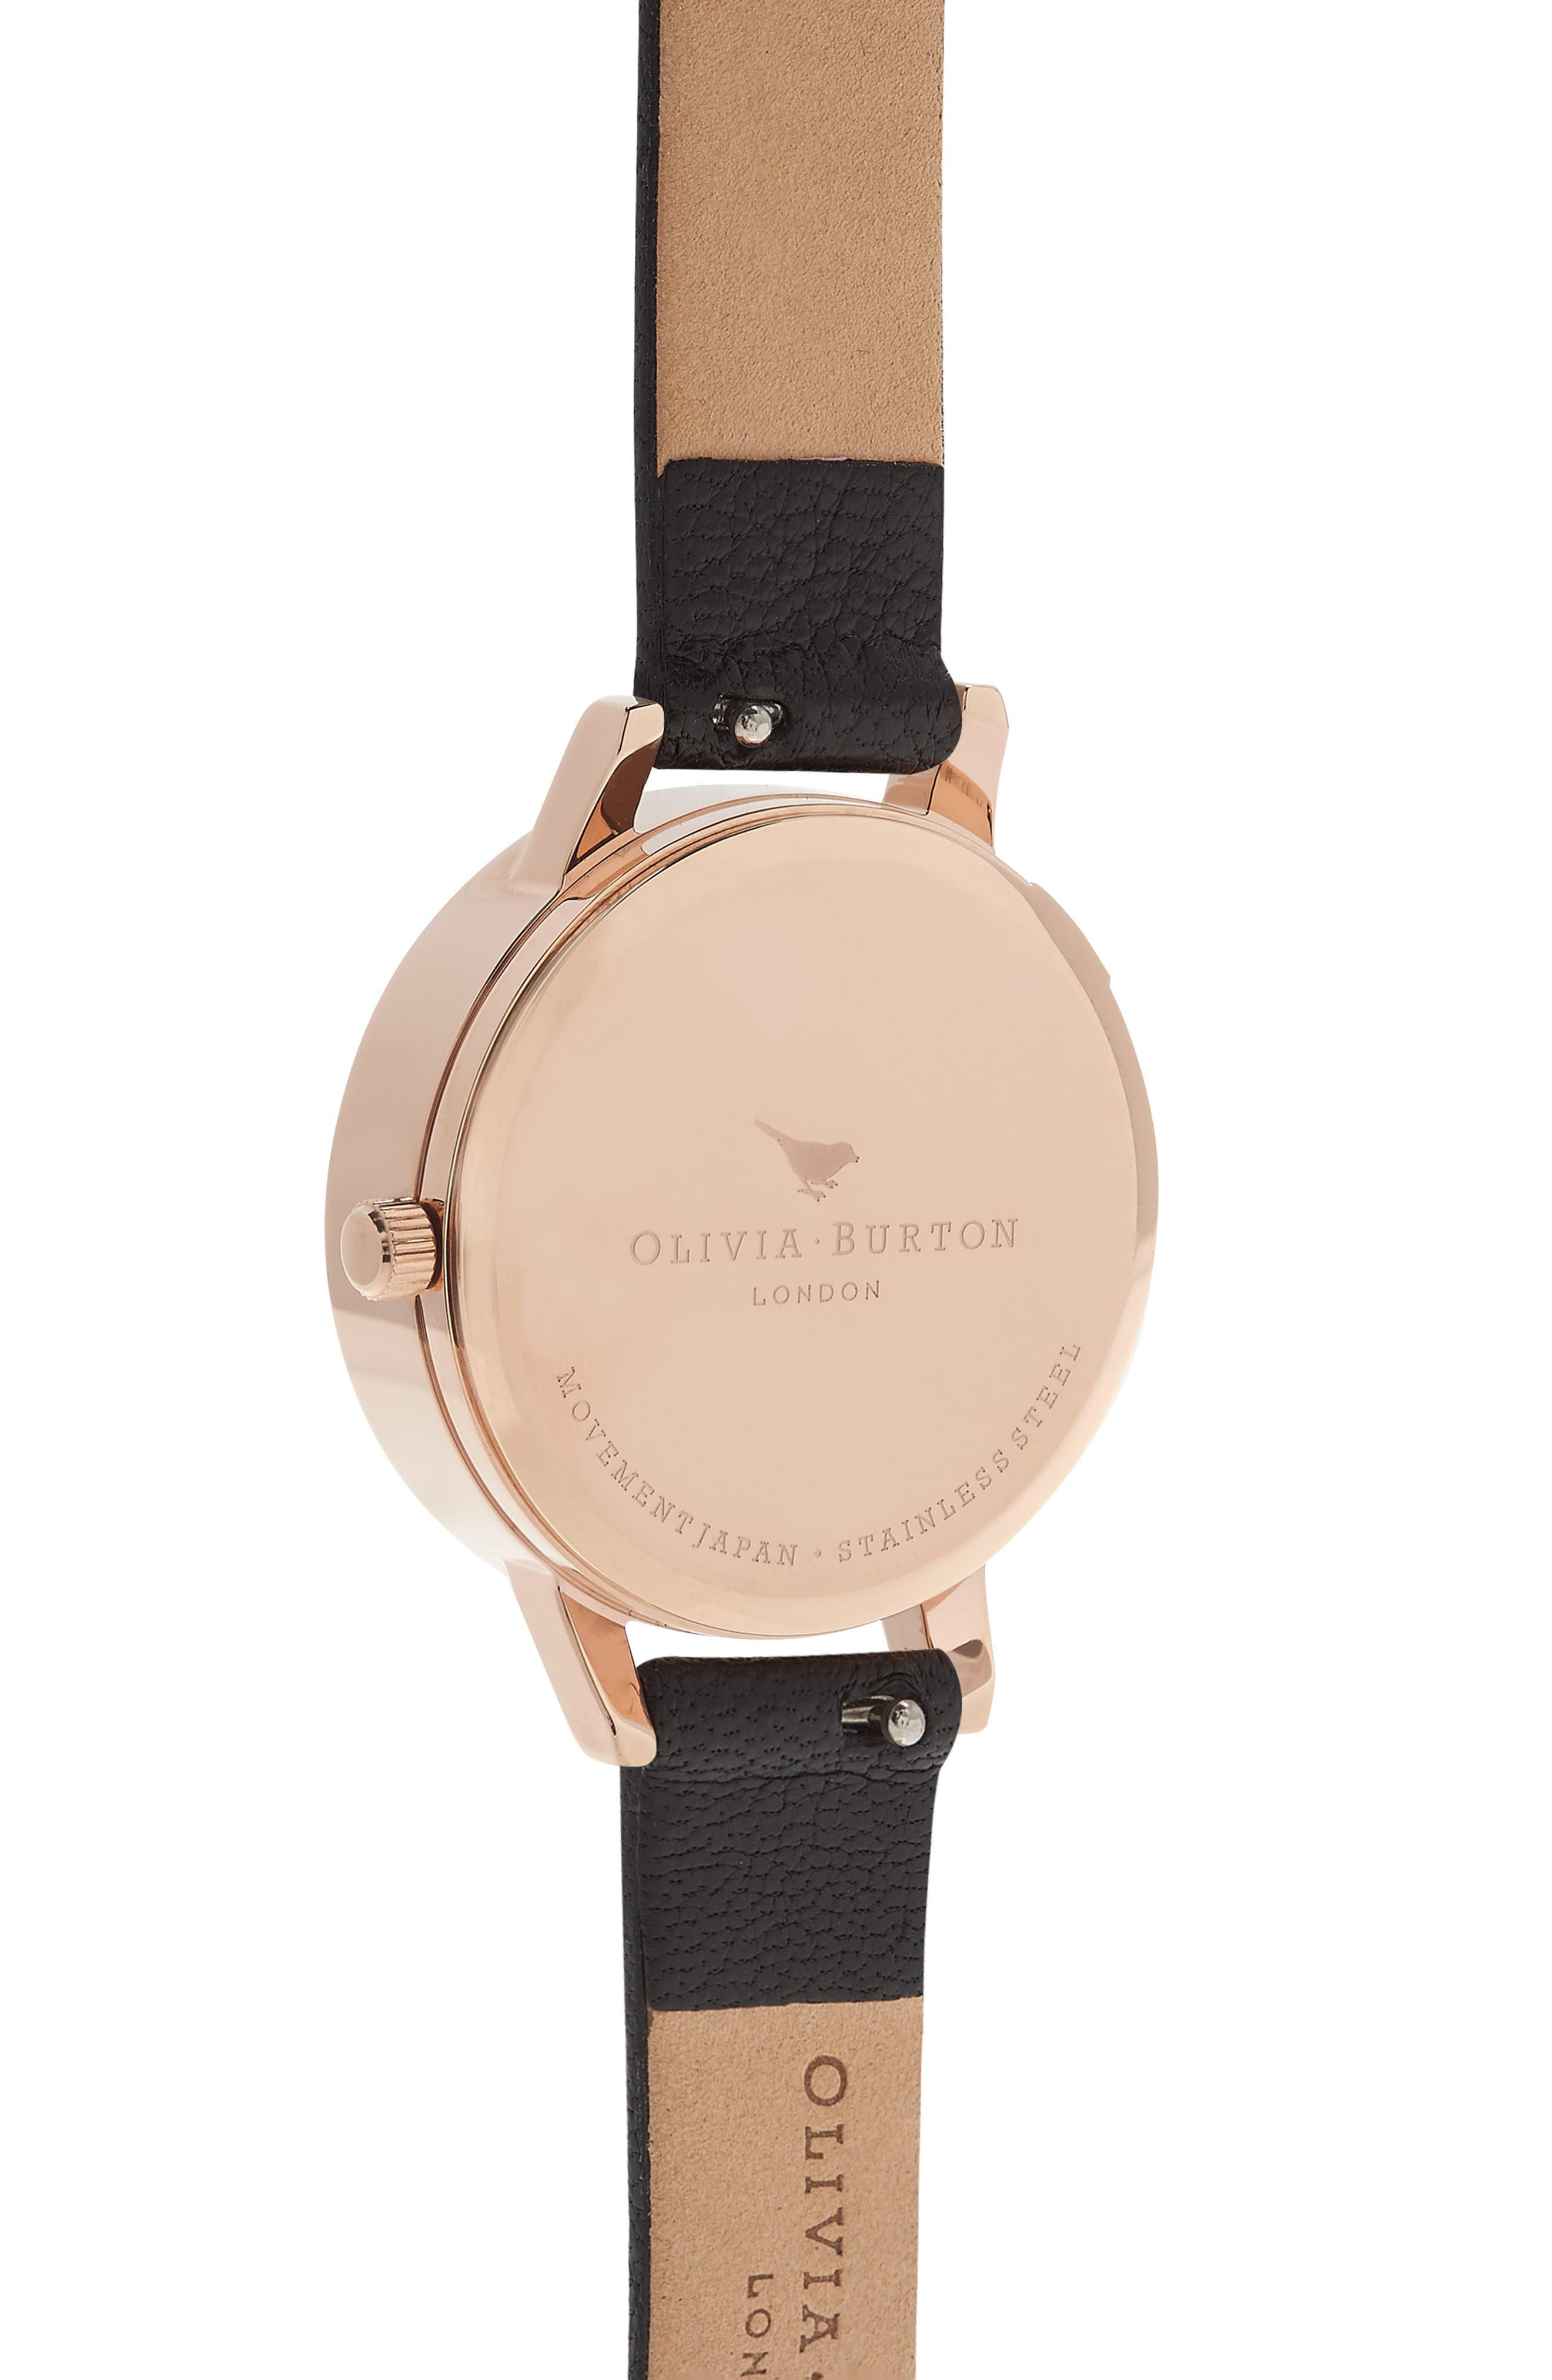 OLIVIA BURTON,                             Bejewelled Florals Leather Strap Watch, 30mm,                             Alternate thumbnail 2, color,                             001